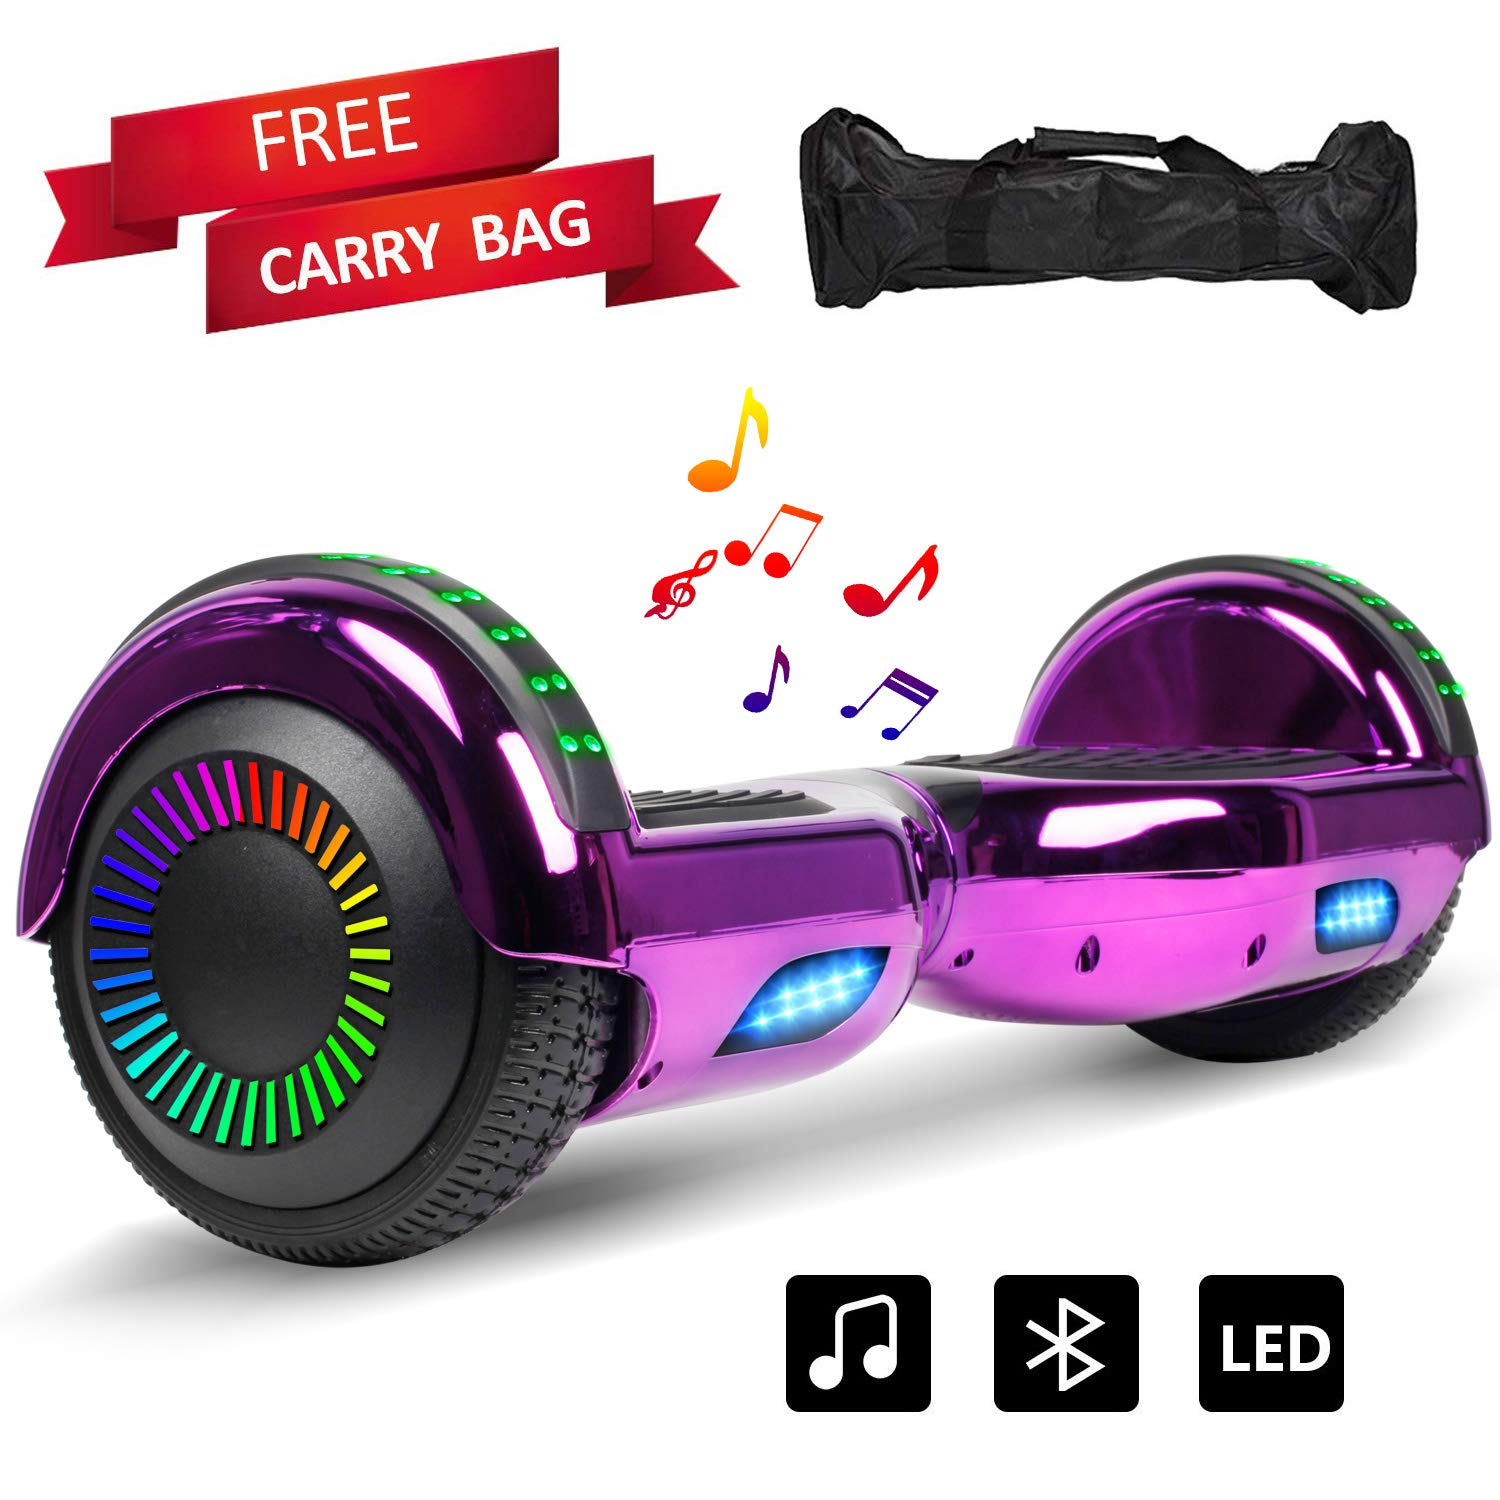 Sea Eagle Hoverboard Self Balancing Scooter Hover Board for Kids Adults with Bluetppth Speaker, SGS Certified and Portable Carrying Bag (Chrome Purple)